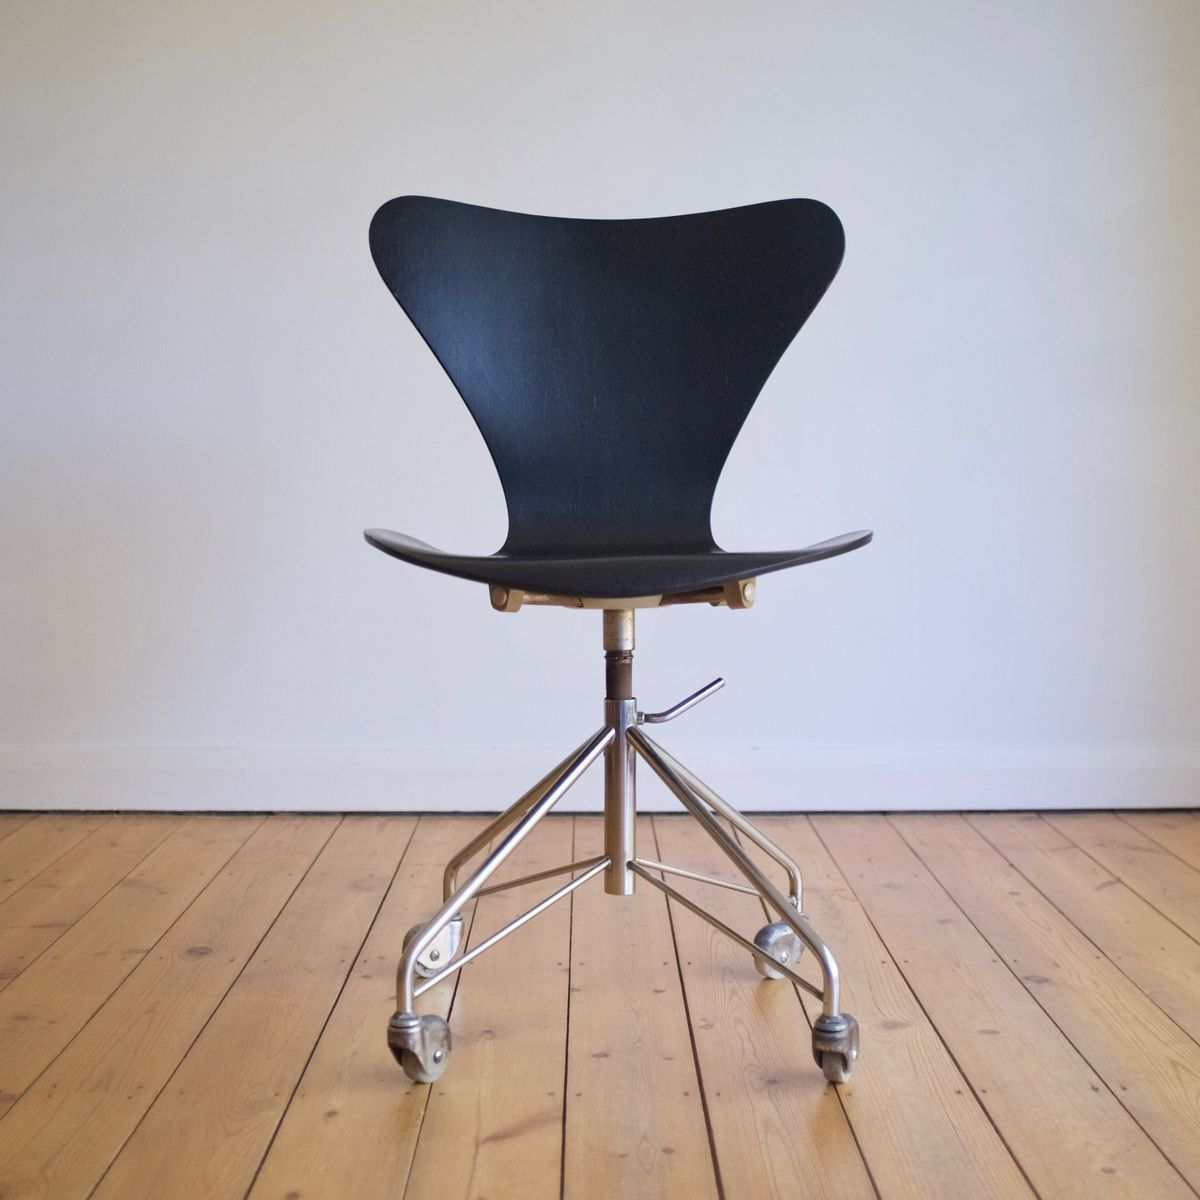 3117 office chair by arne jacobsen for fritz hansen 1967 for sale at pamono. Black Bedroom Furniture Sets. Home Design Ideas